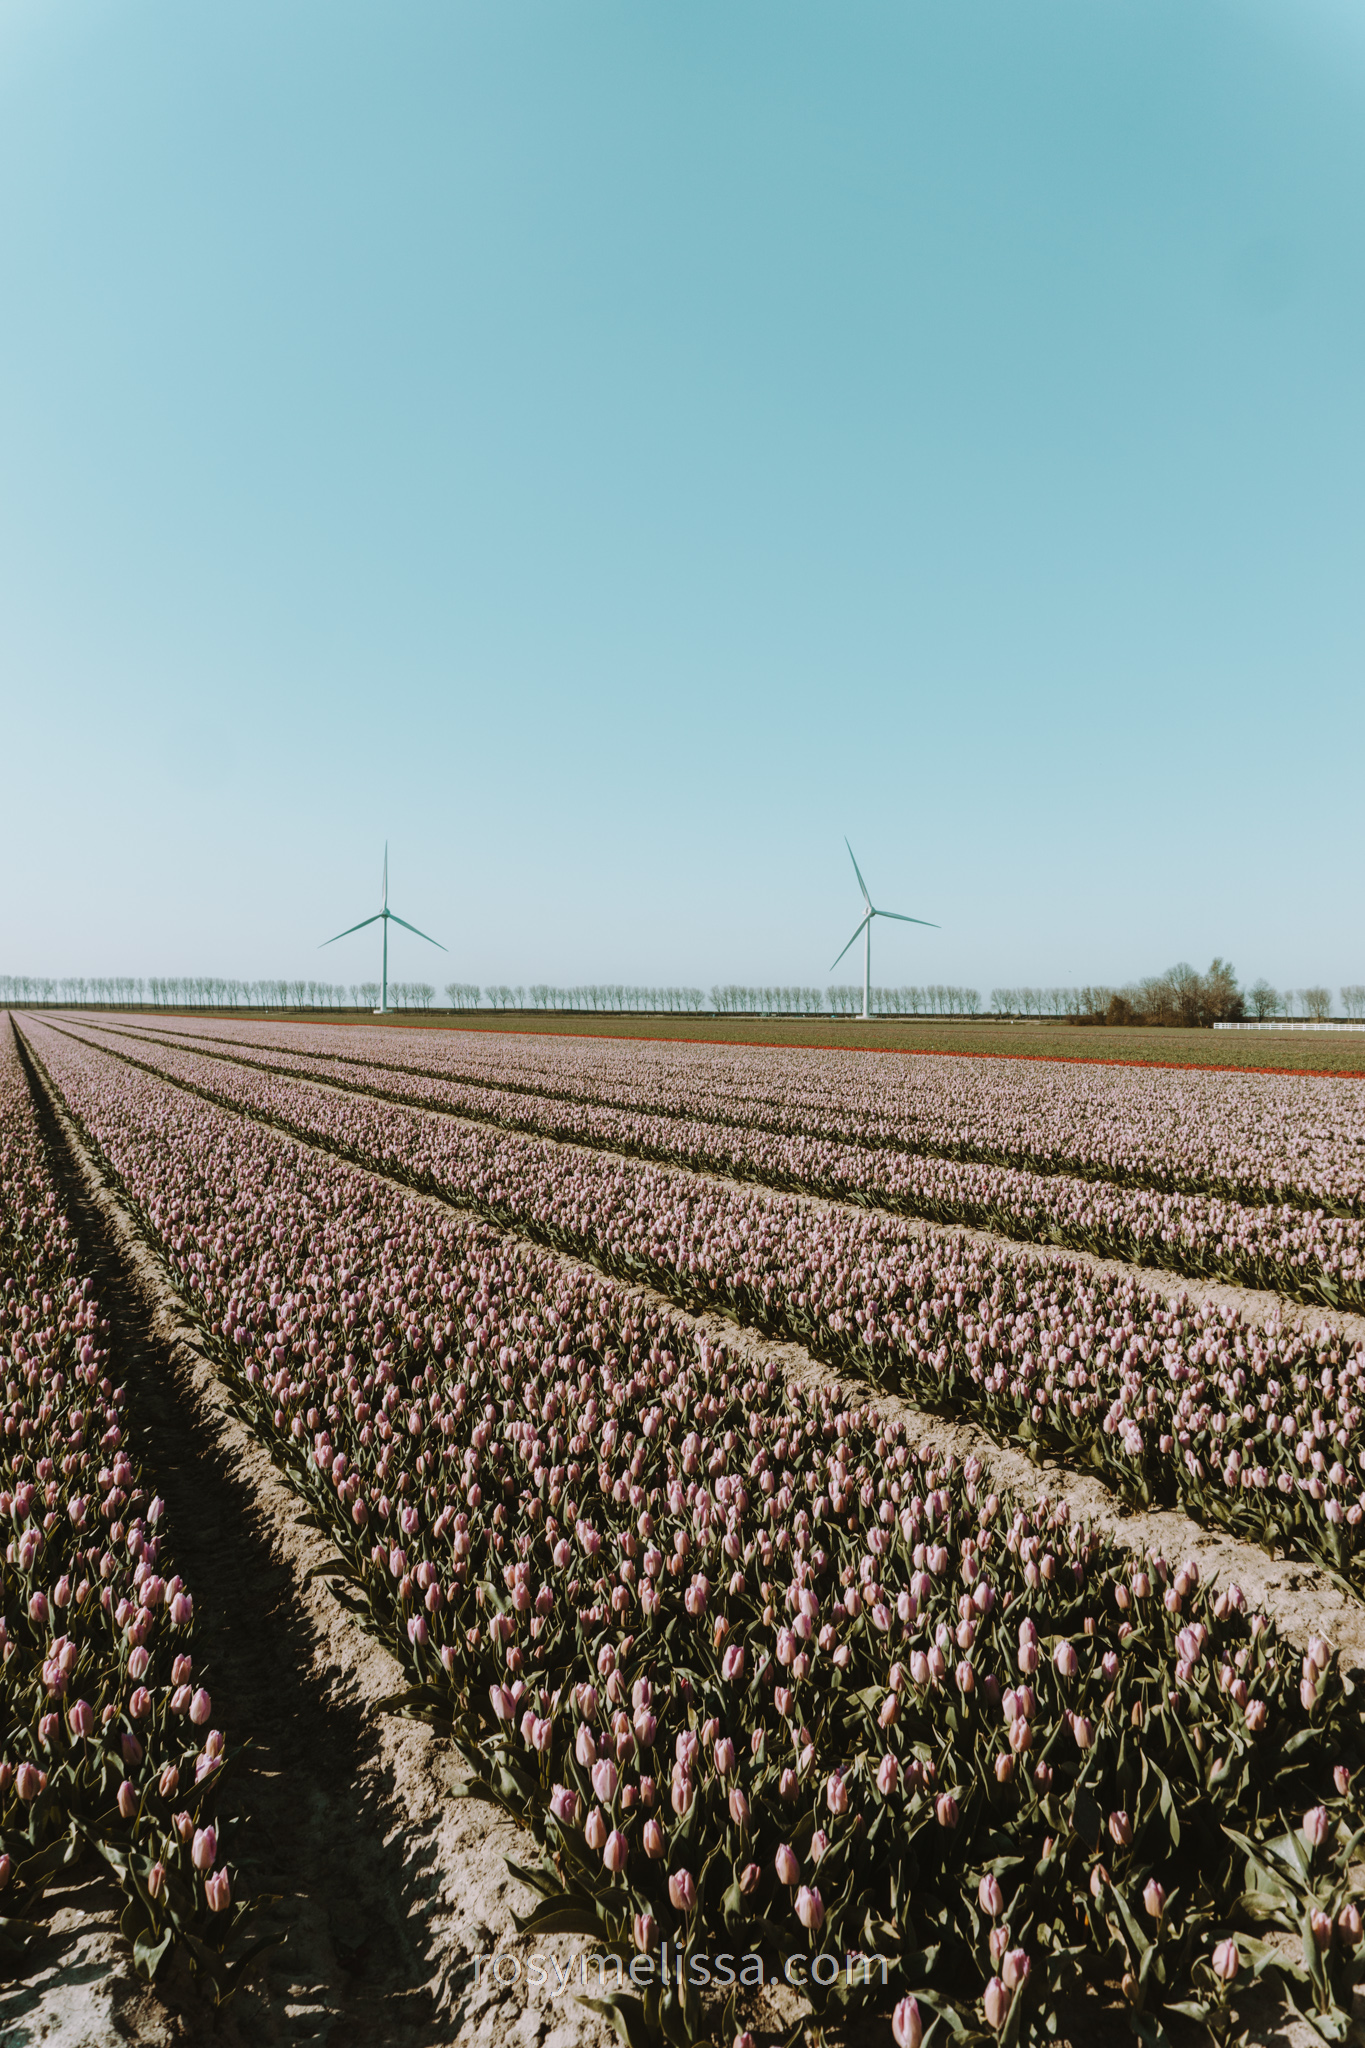 a view on a yellow tulip field in the netherlands